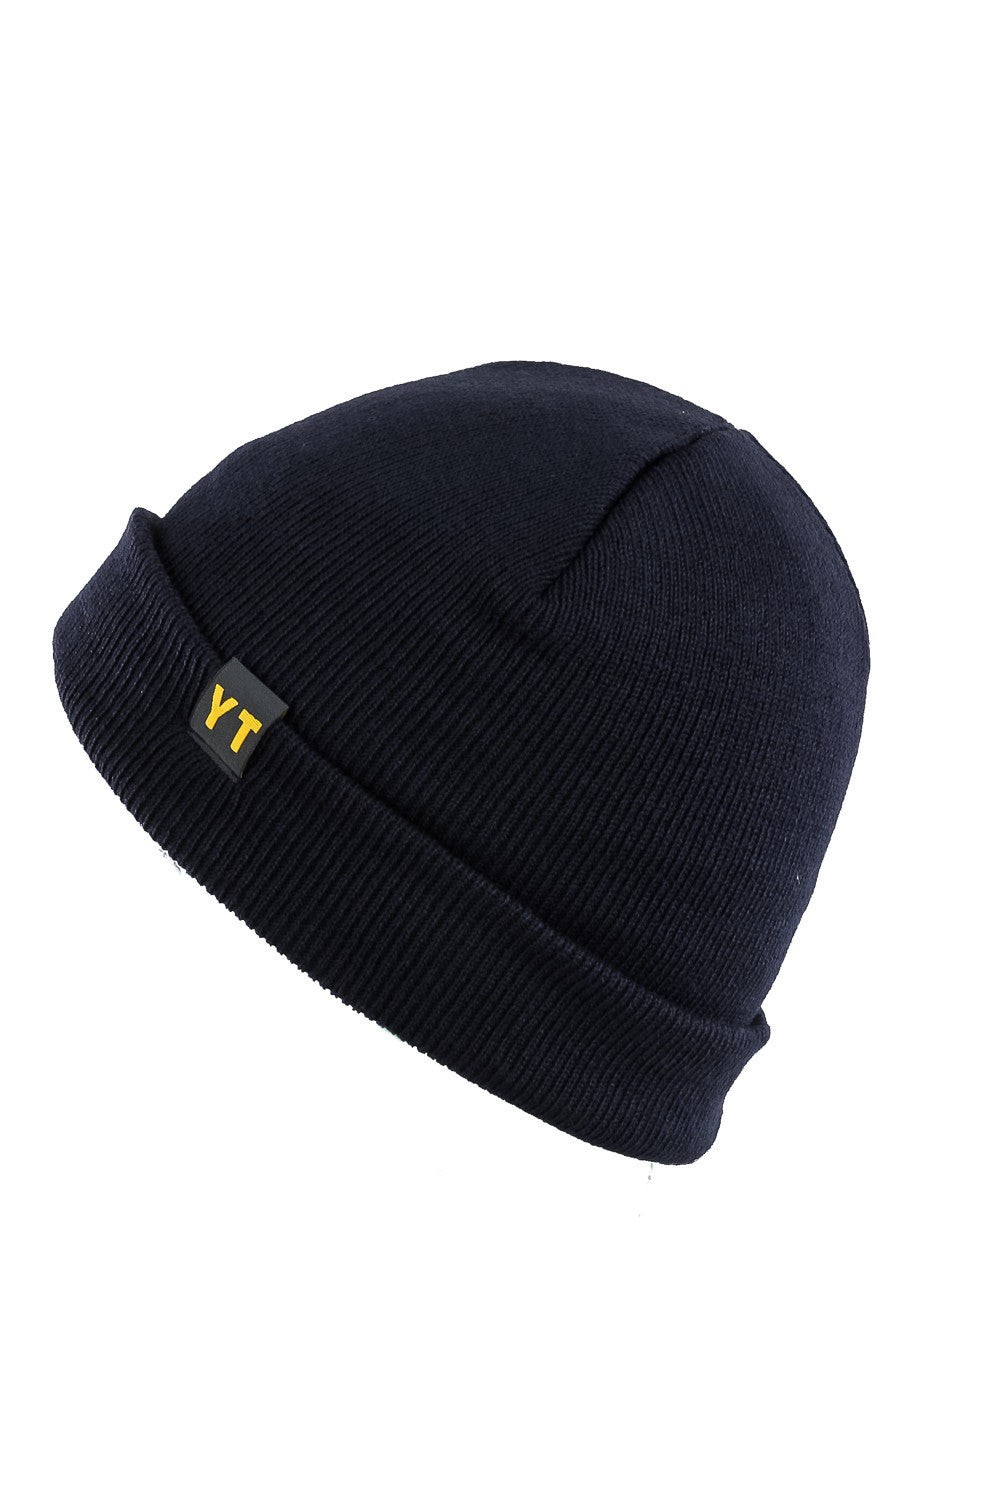 Park Beanie Black - Yuki Threads